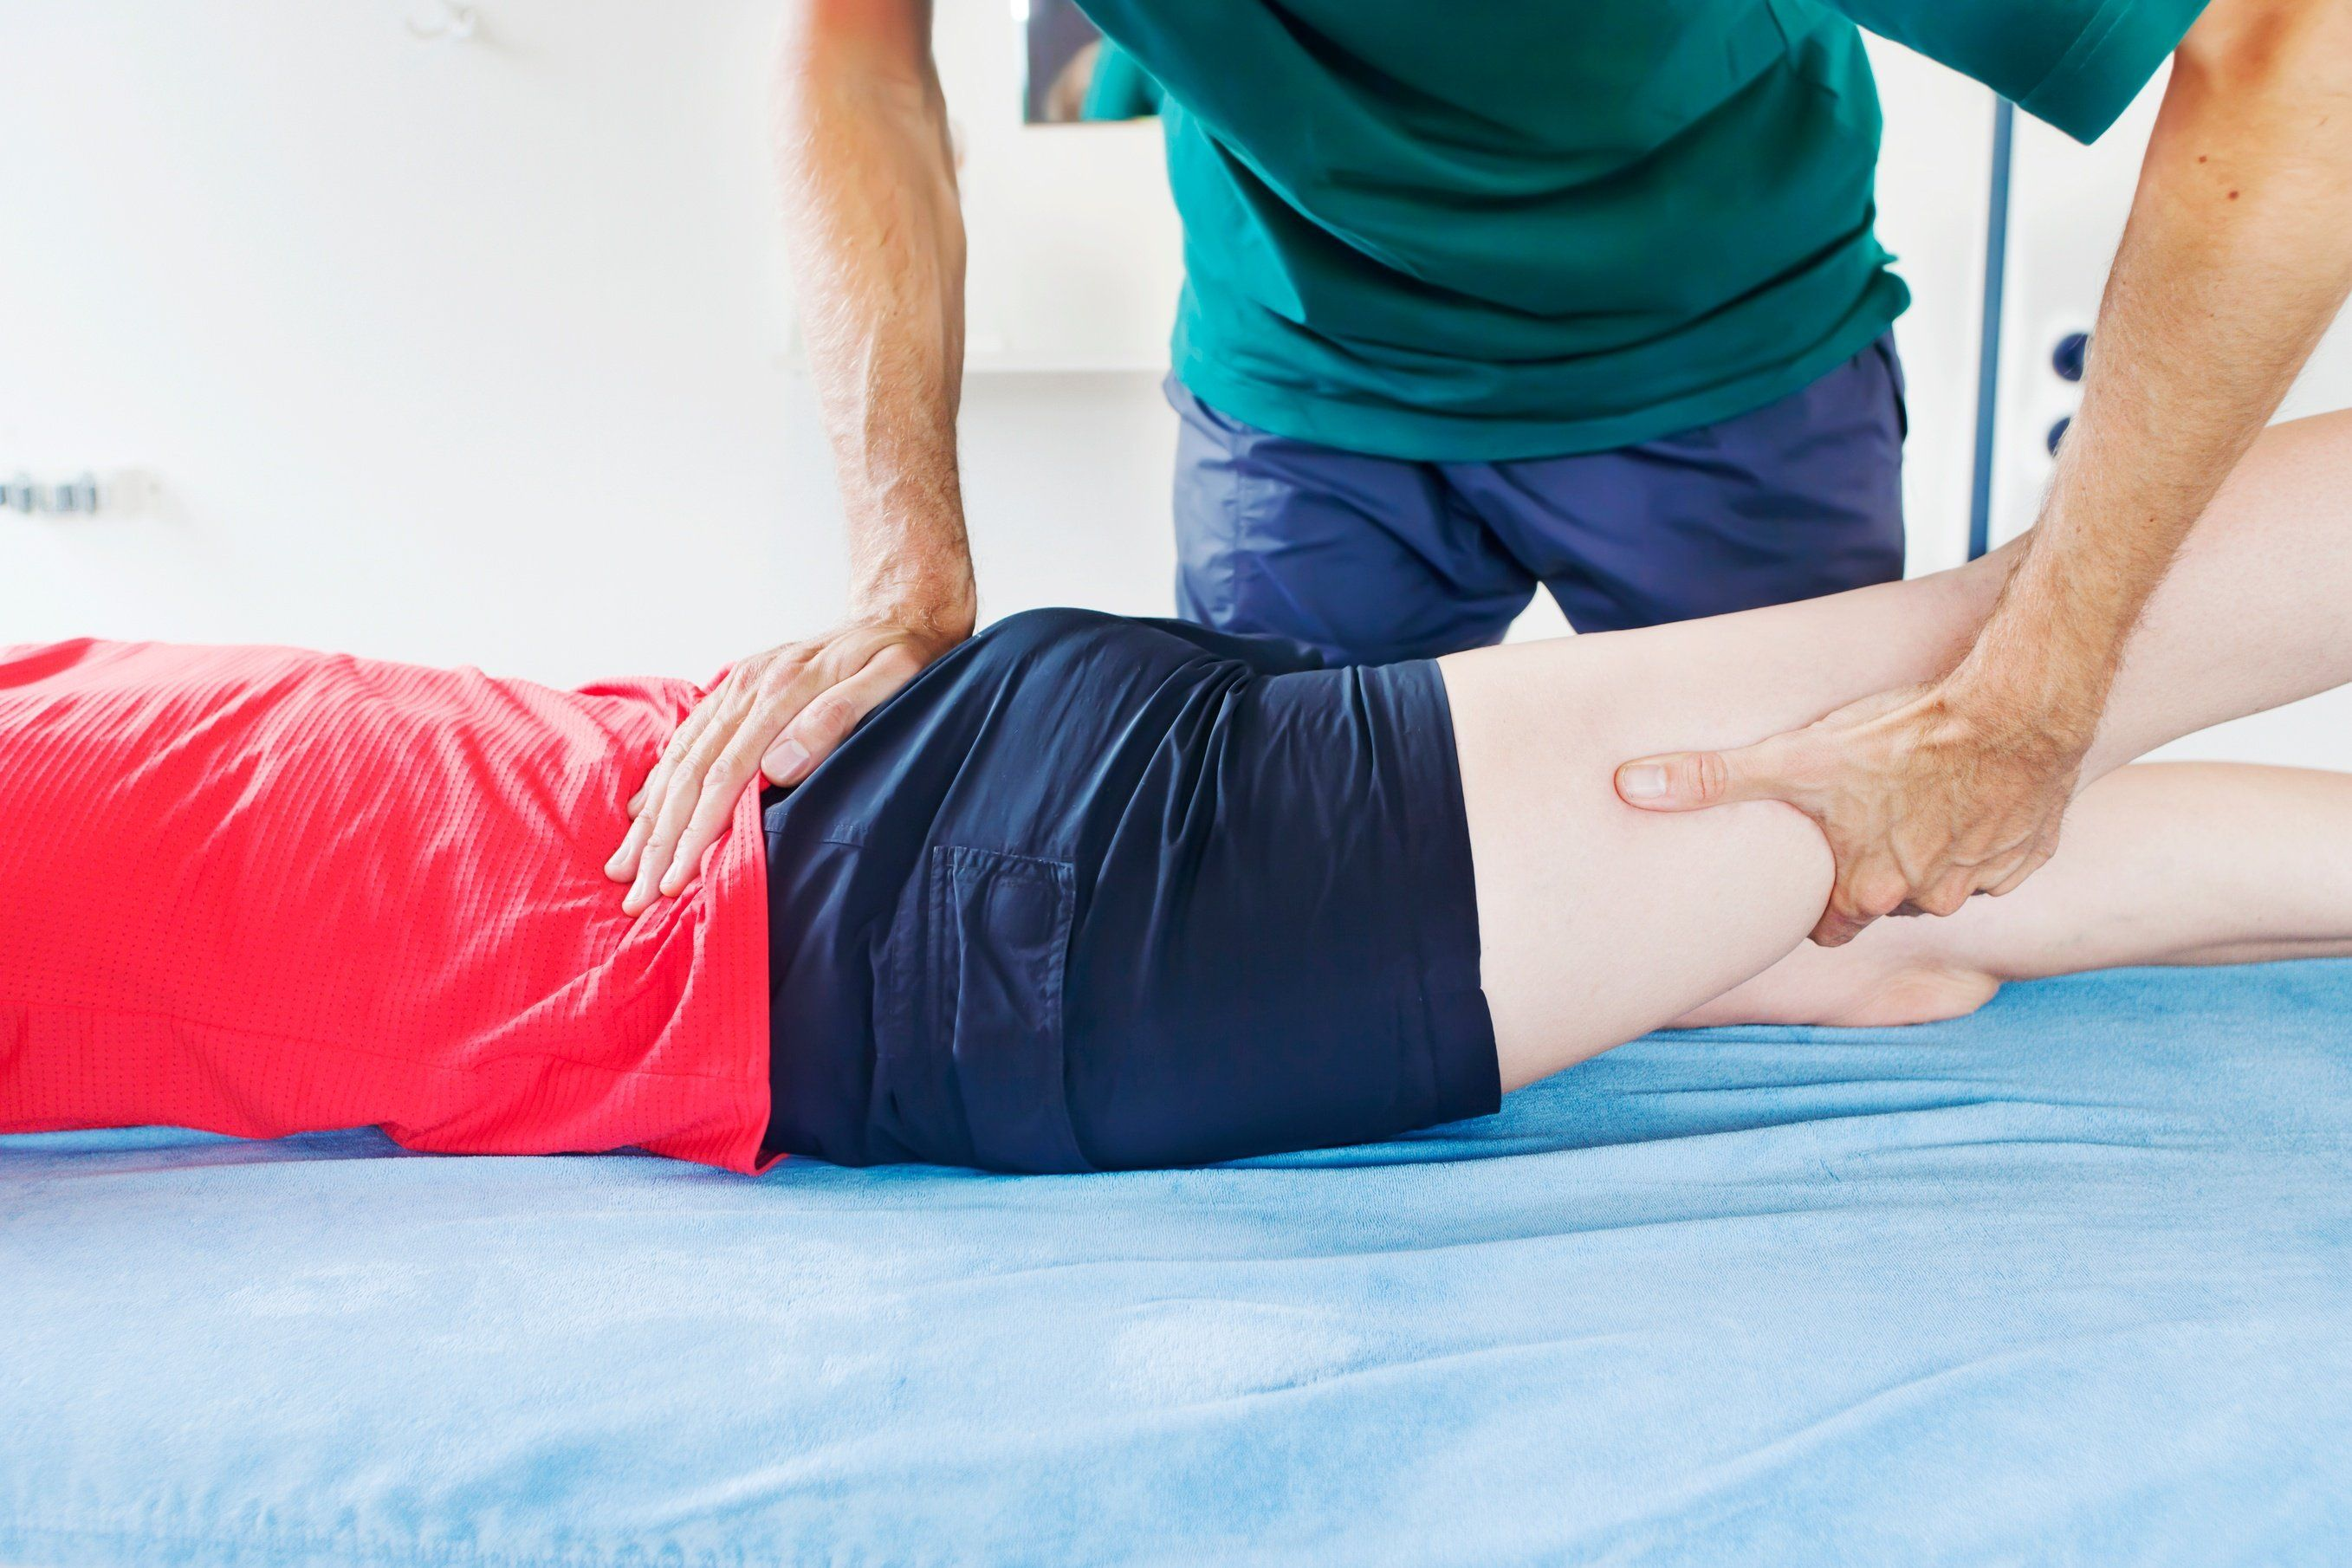 Image result for negotiation Chiropractor injury claim